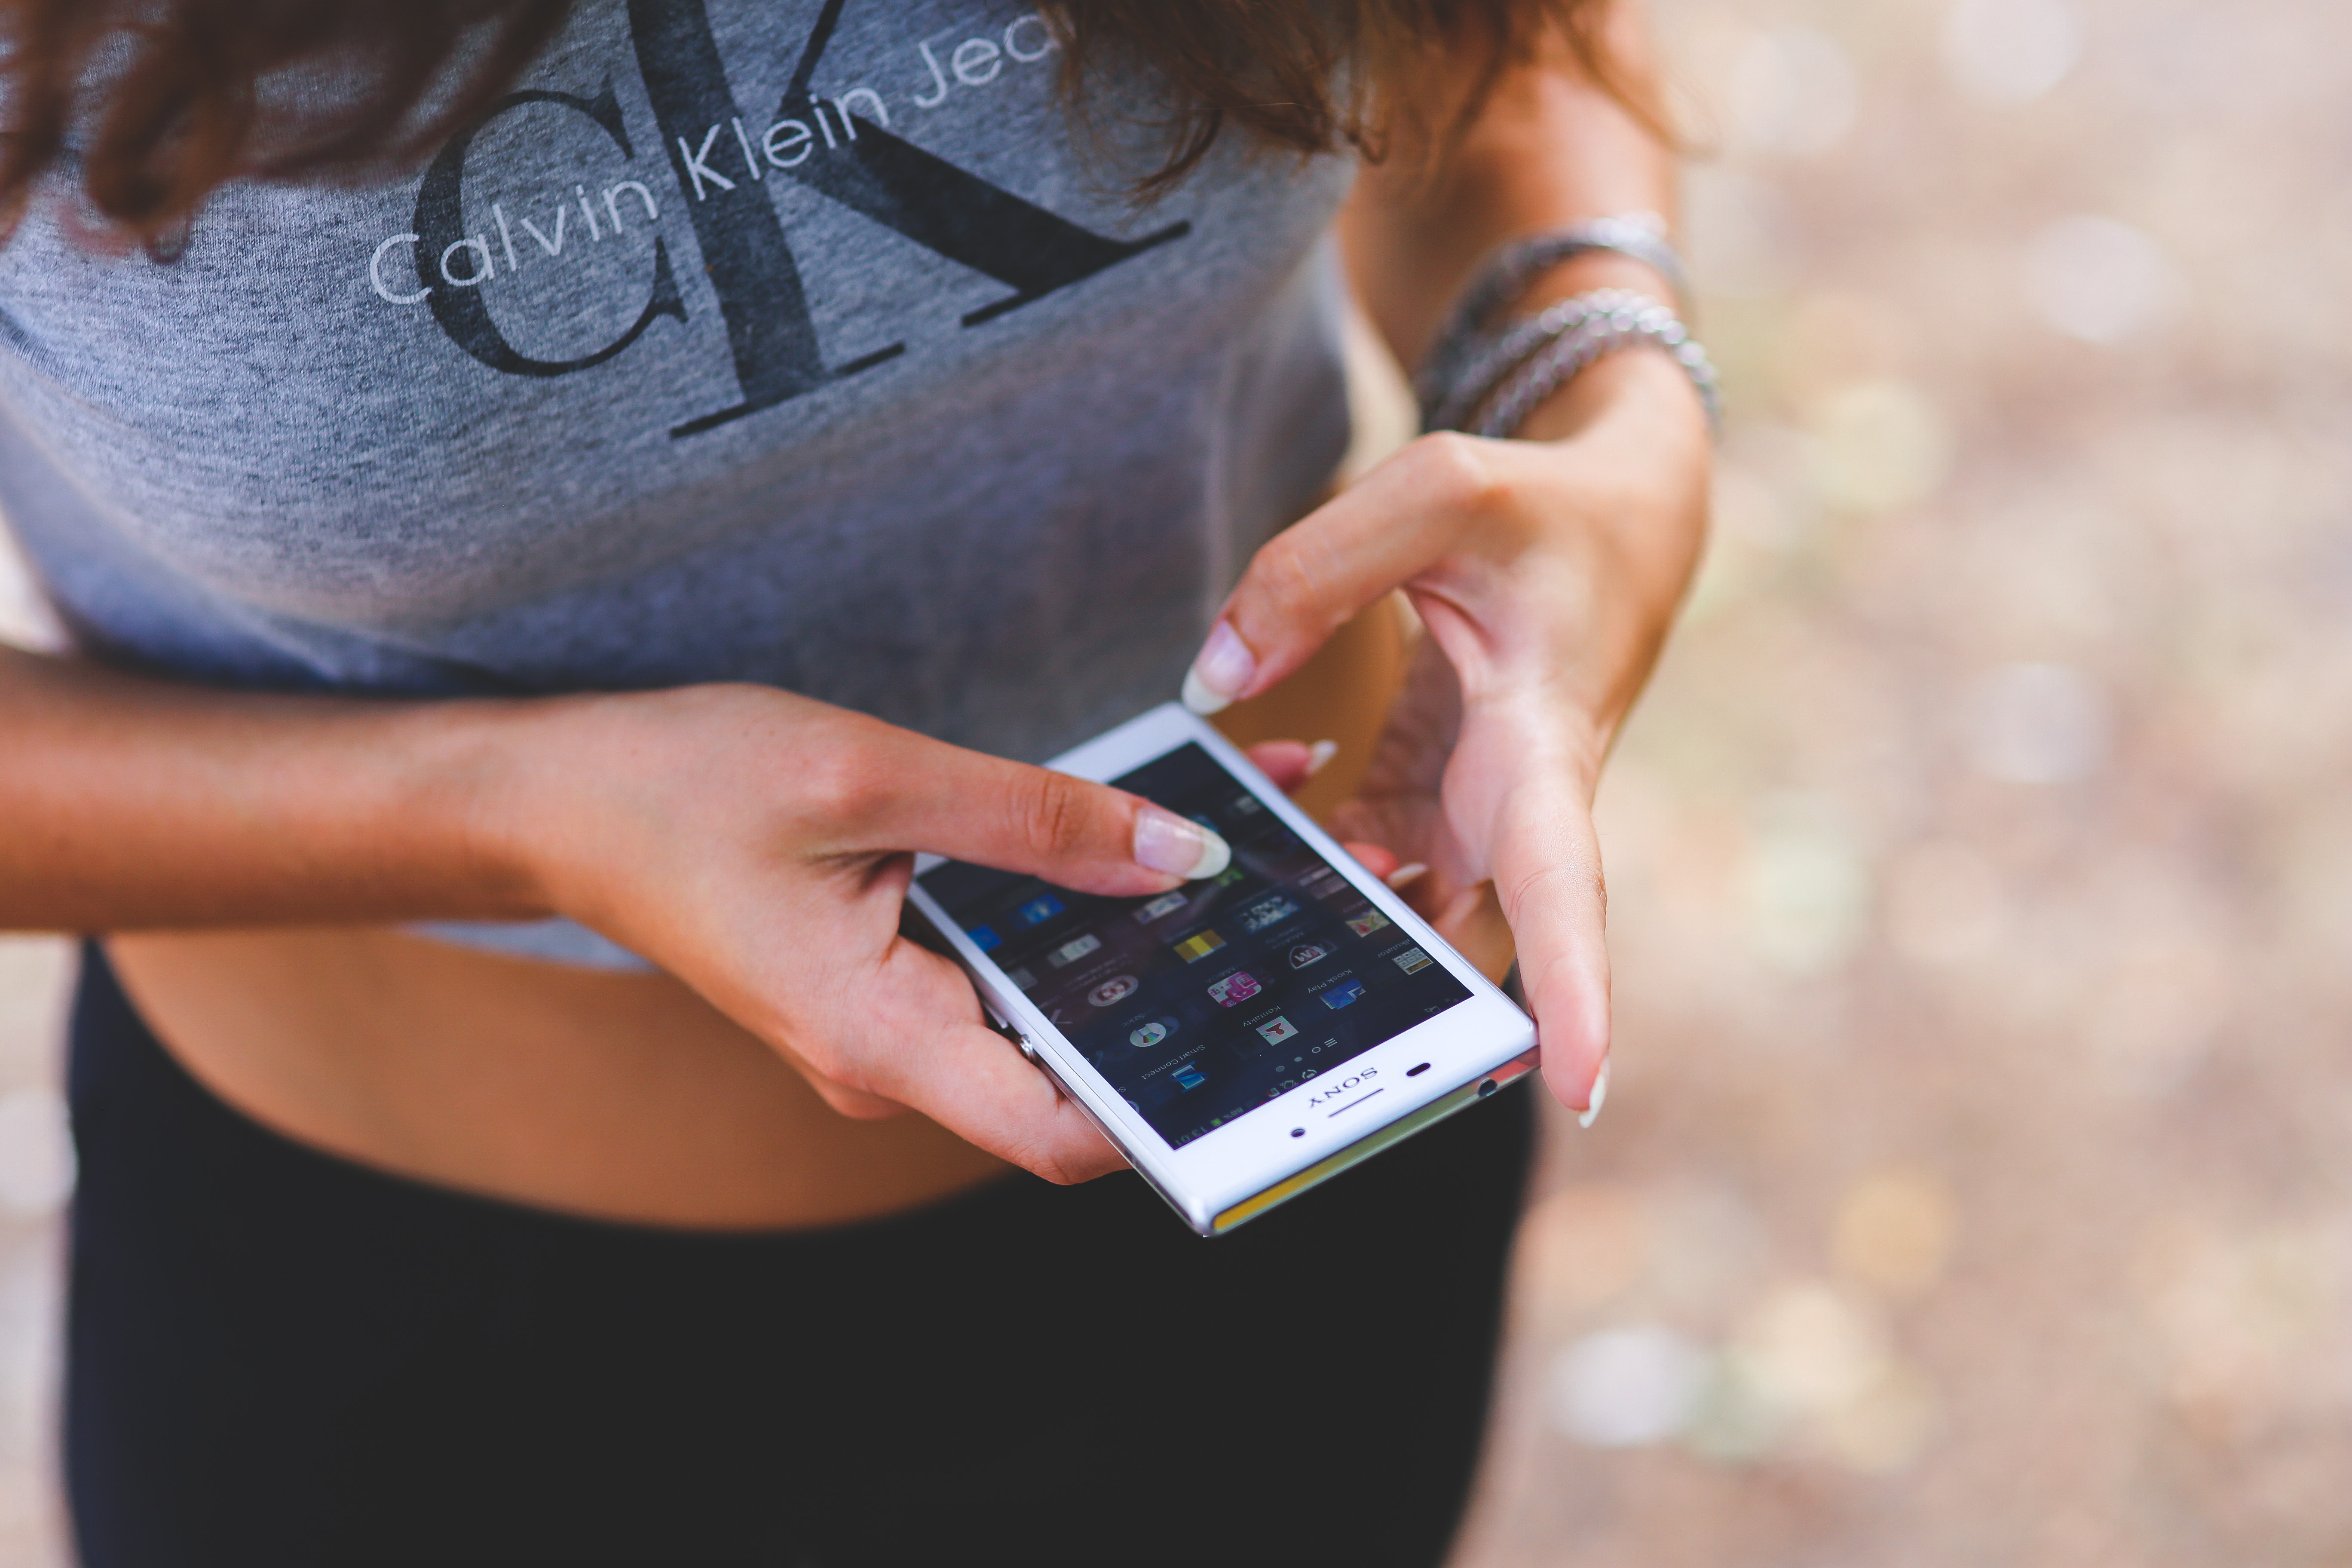 Smartphone in girl's hands, Calvin Klein, Cell phone, Girl, Hands, HQ Photo